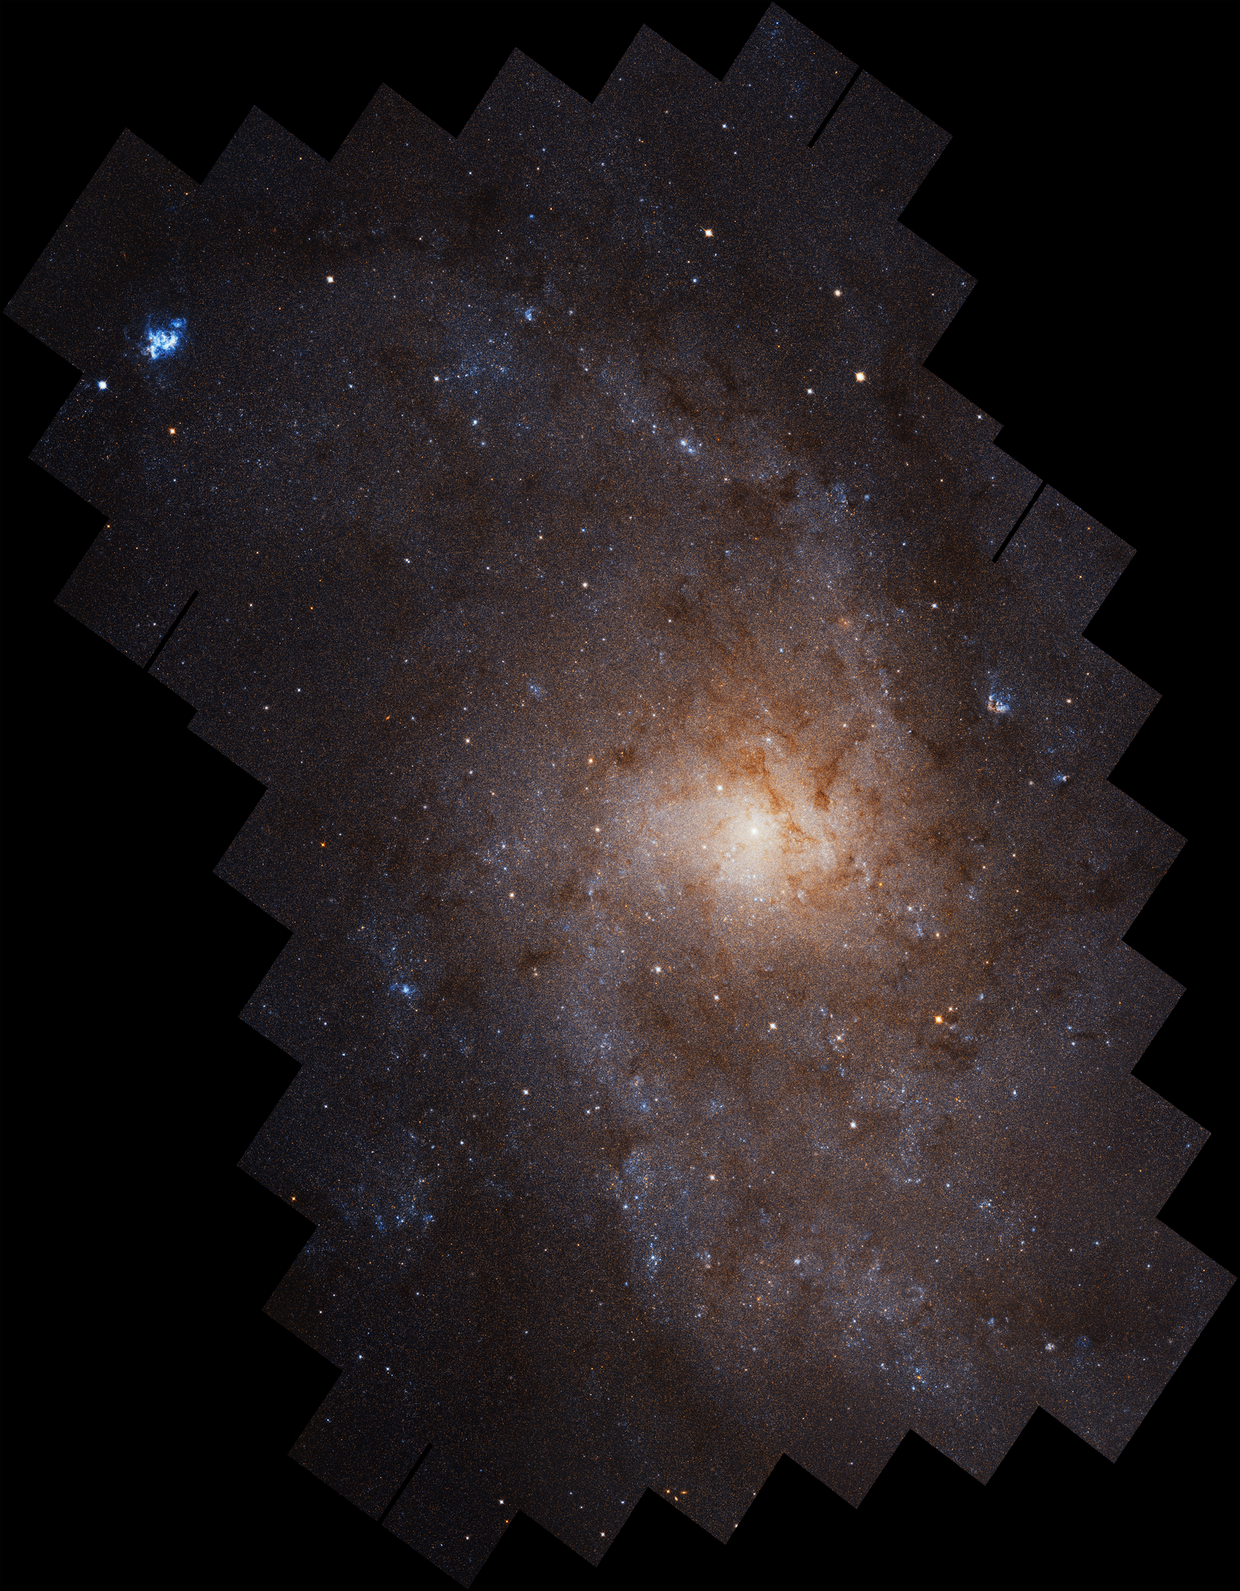 Hubblecast 115 Light: Triangulum Galaxy in unrivalled detail